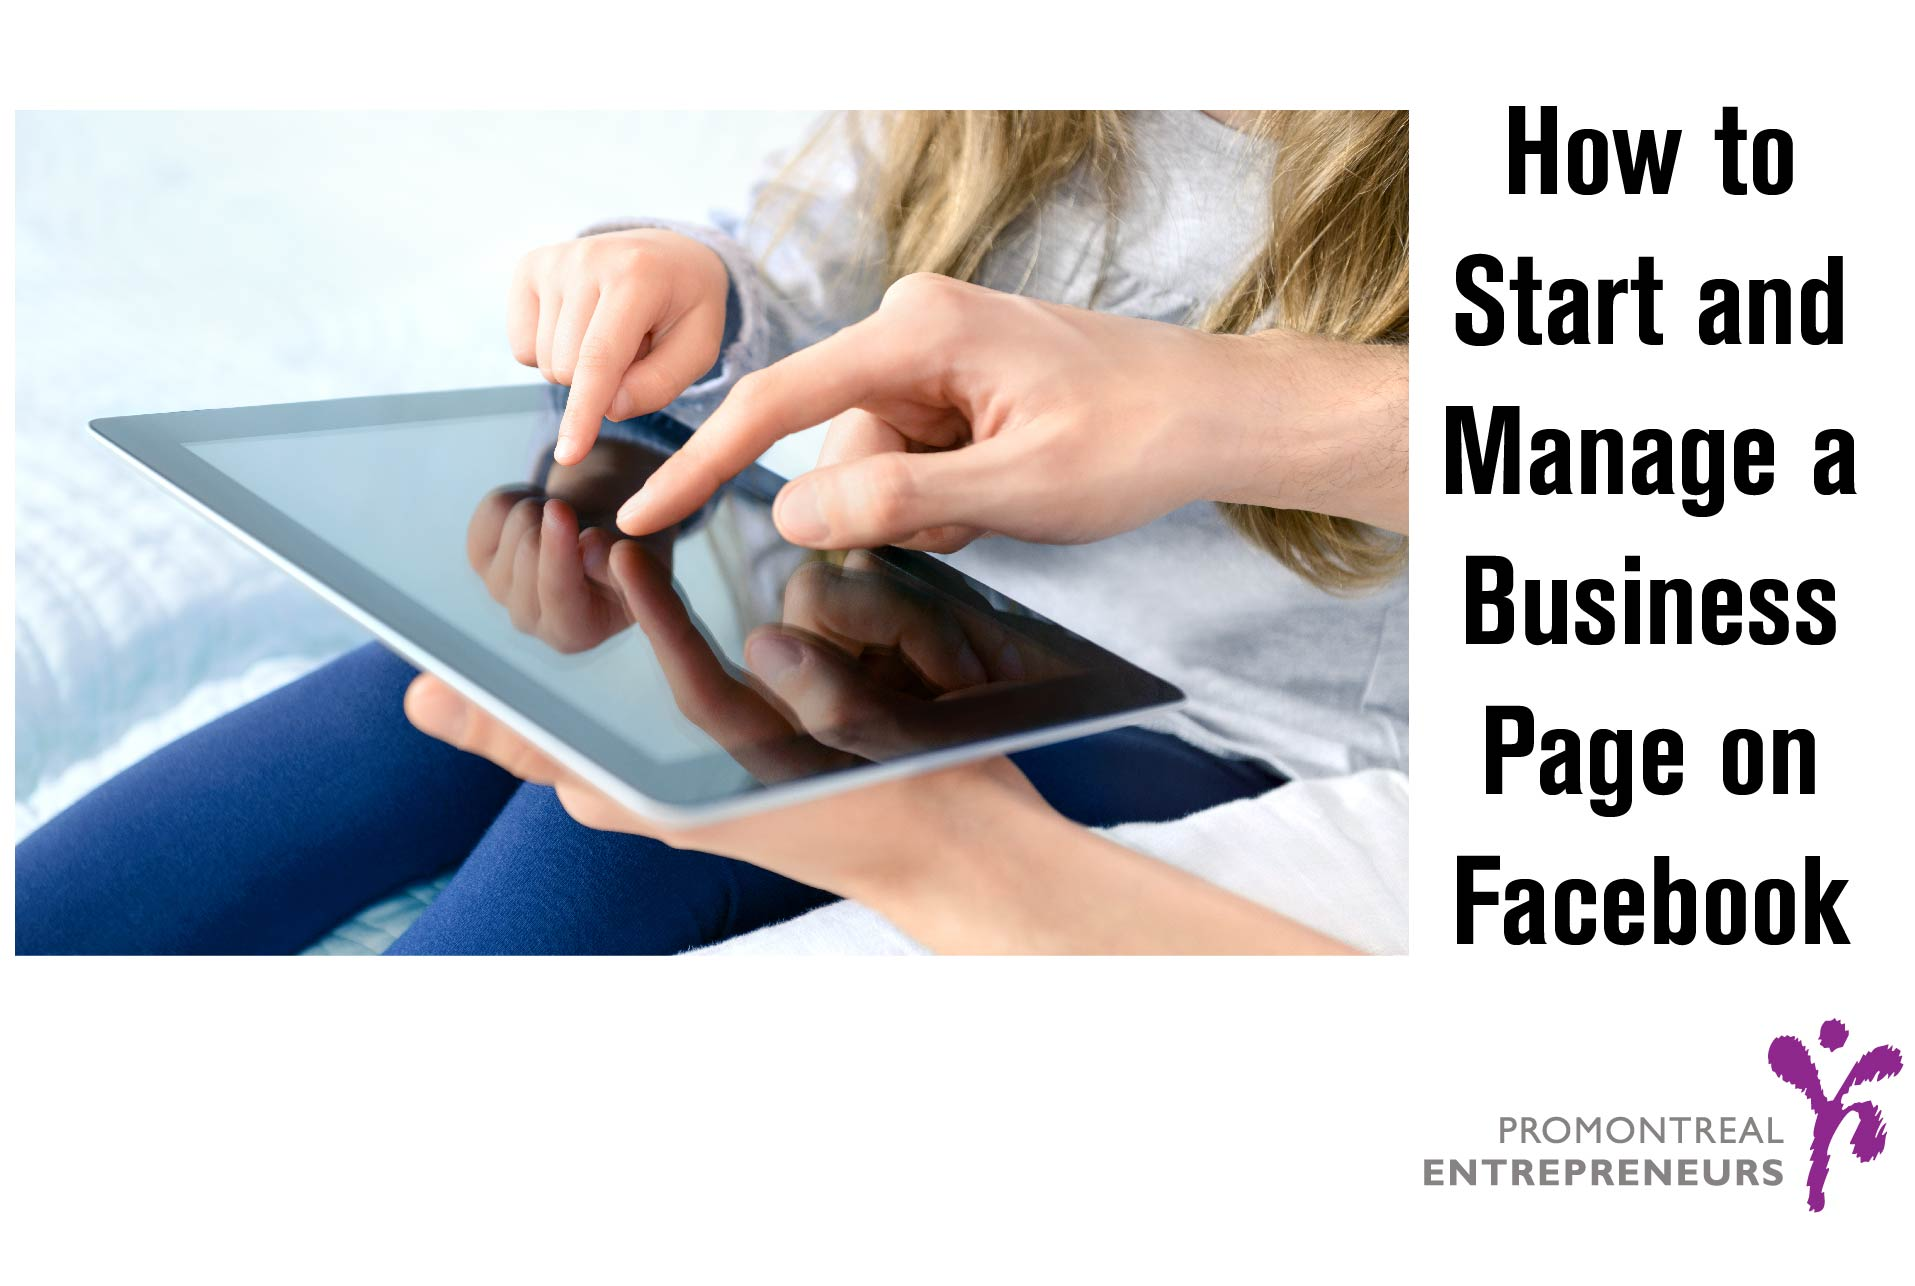 how-to-start-and-mange-a-business-page-on-facebook